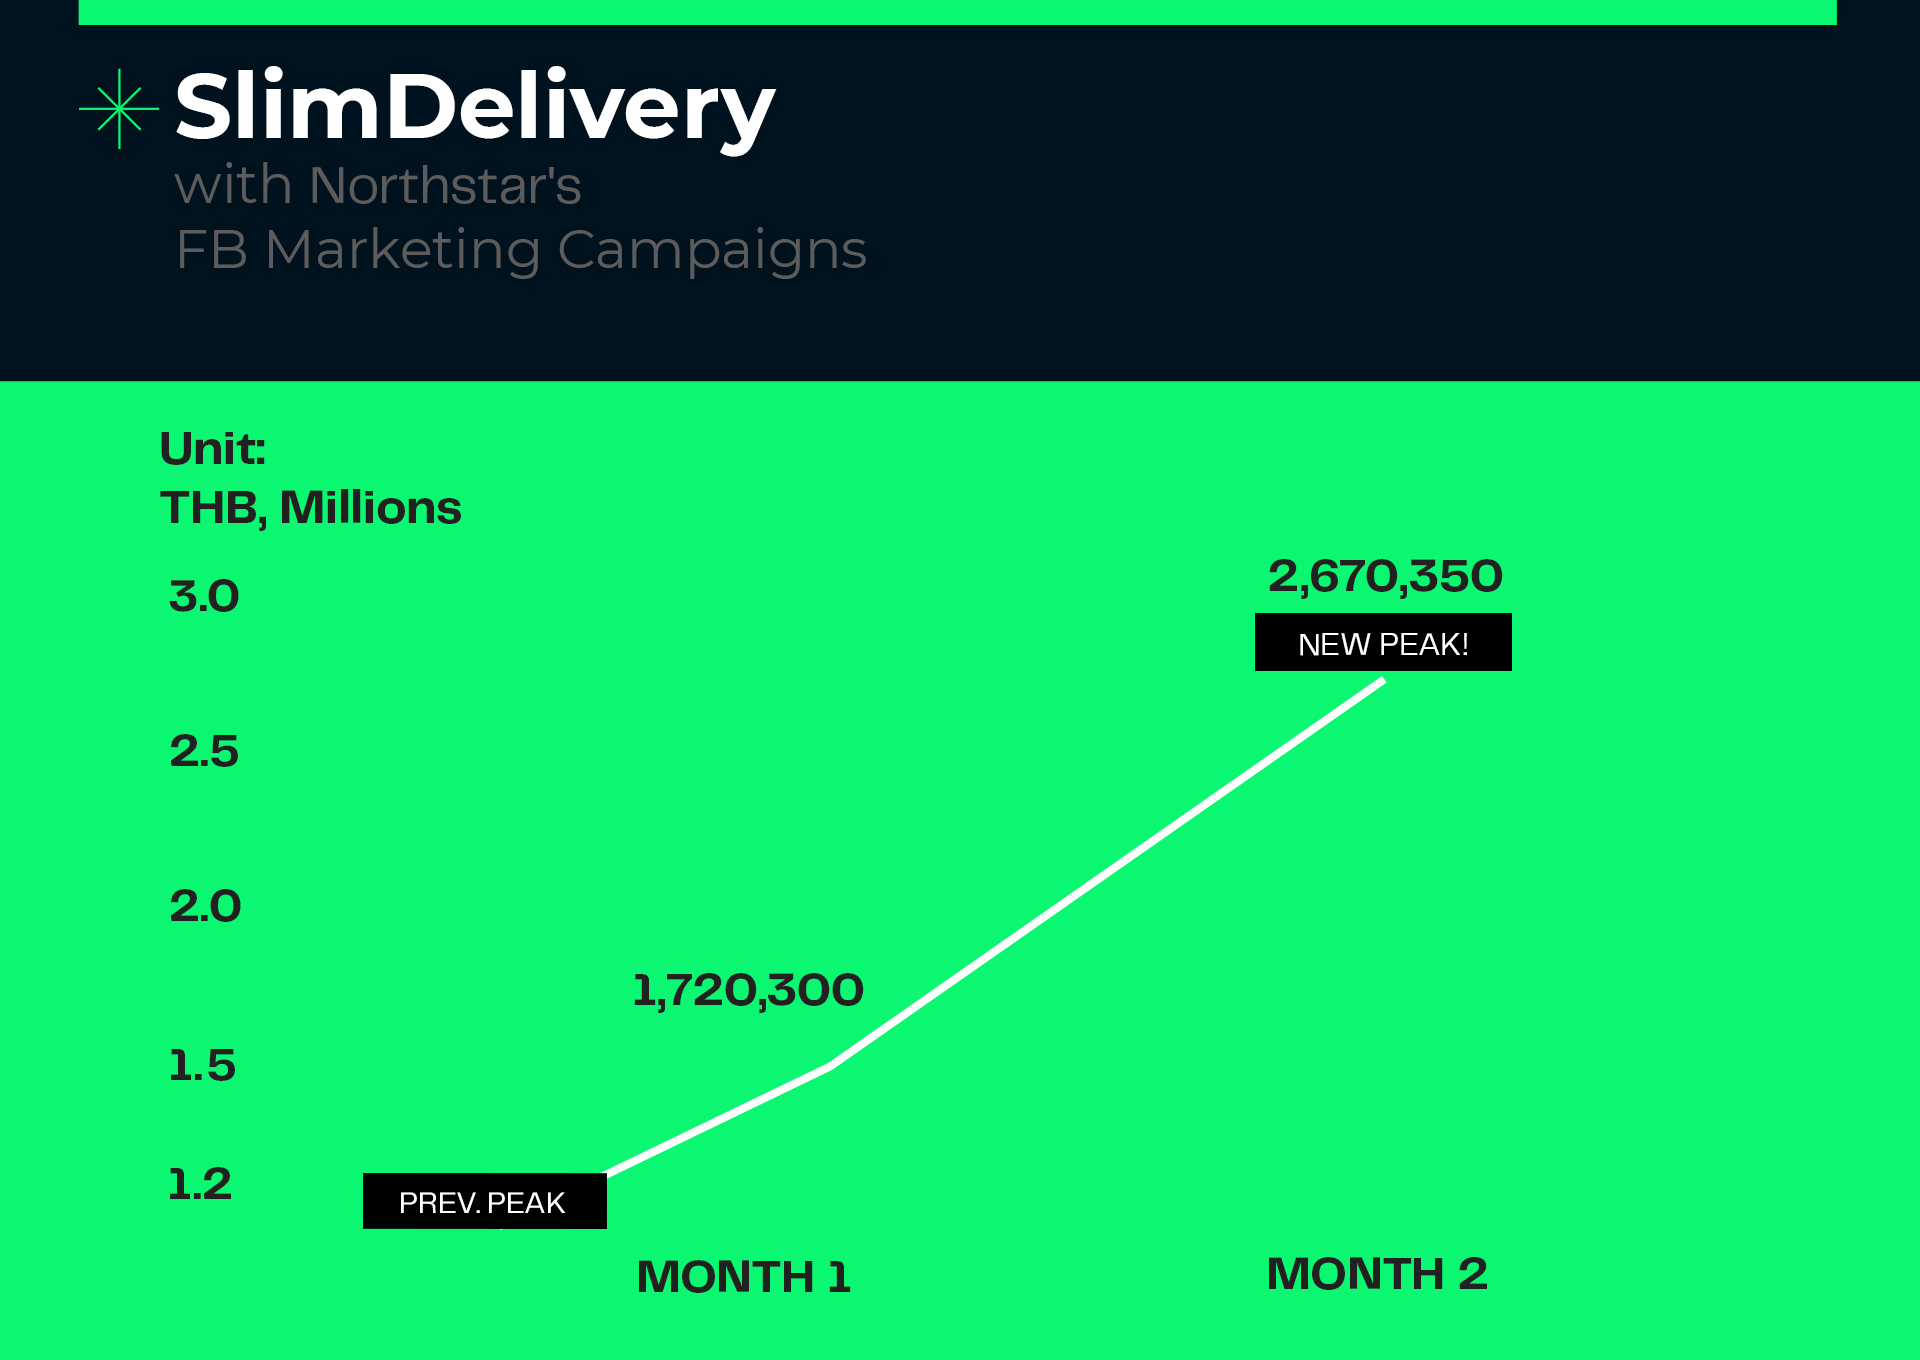 Graphic of marketing KPI for online food delivery